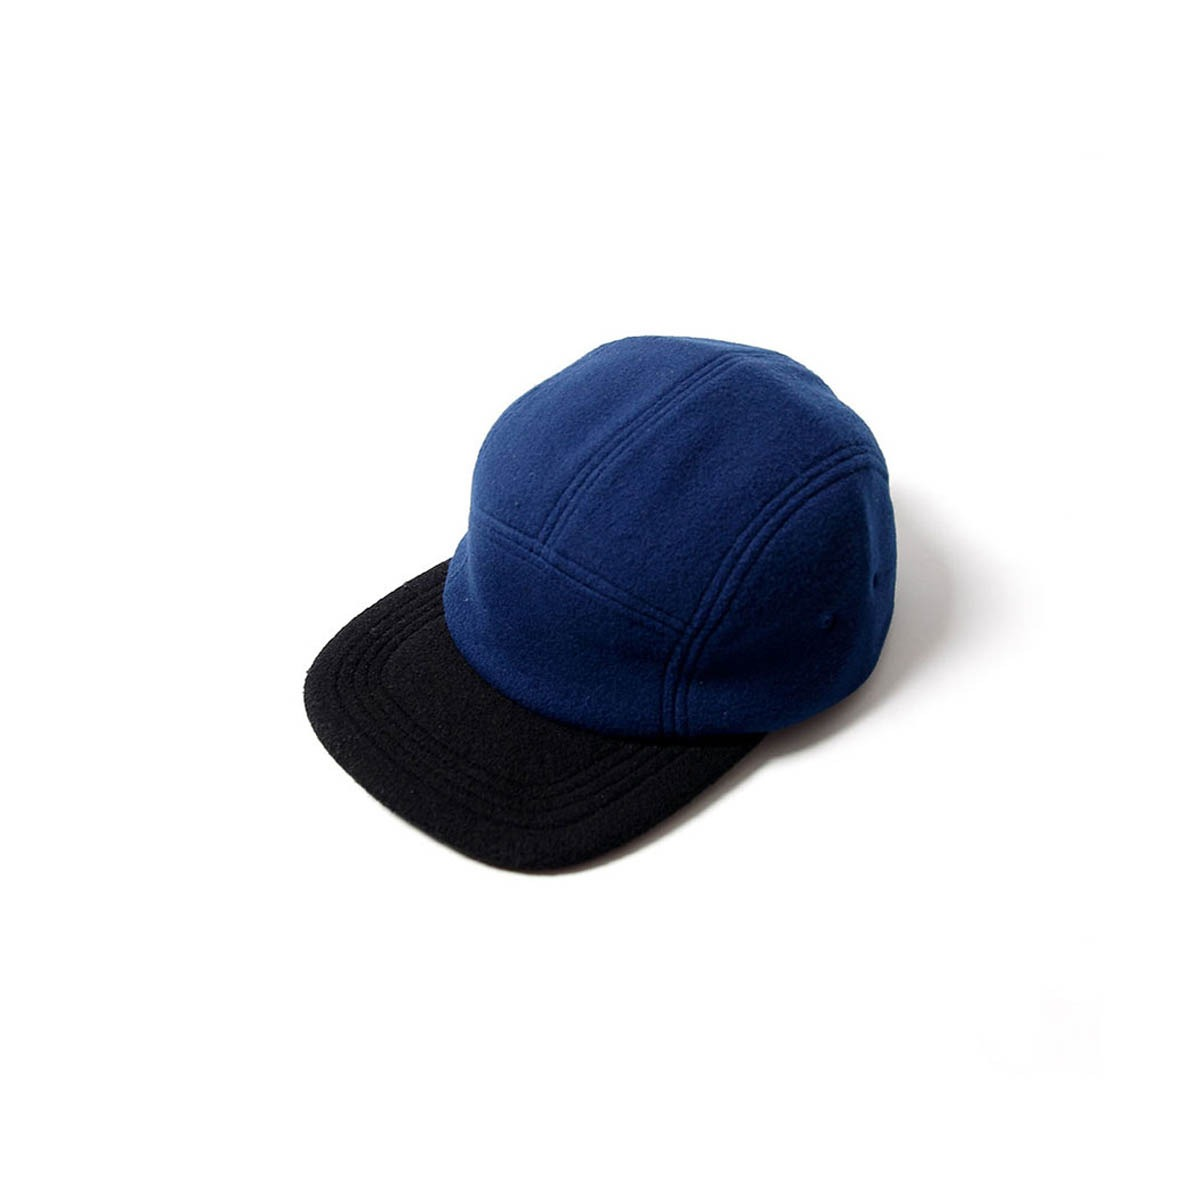 [BEHEAVYER] BHR FLLECE CAMP CAP 'BLUE'